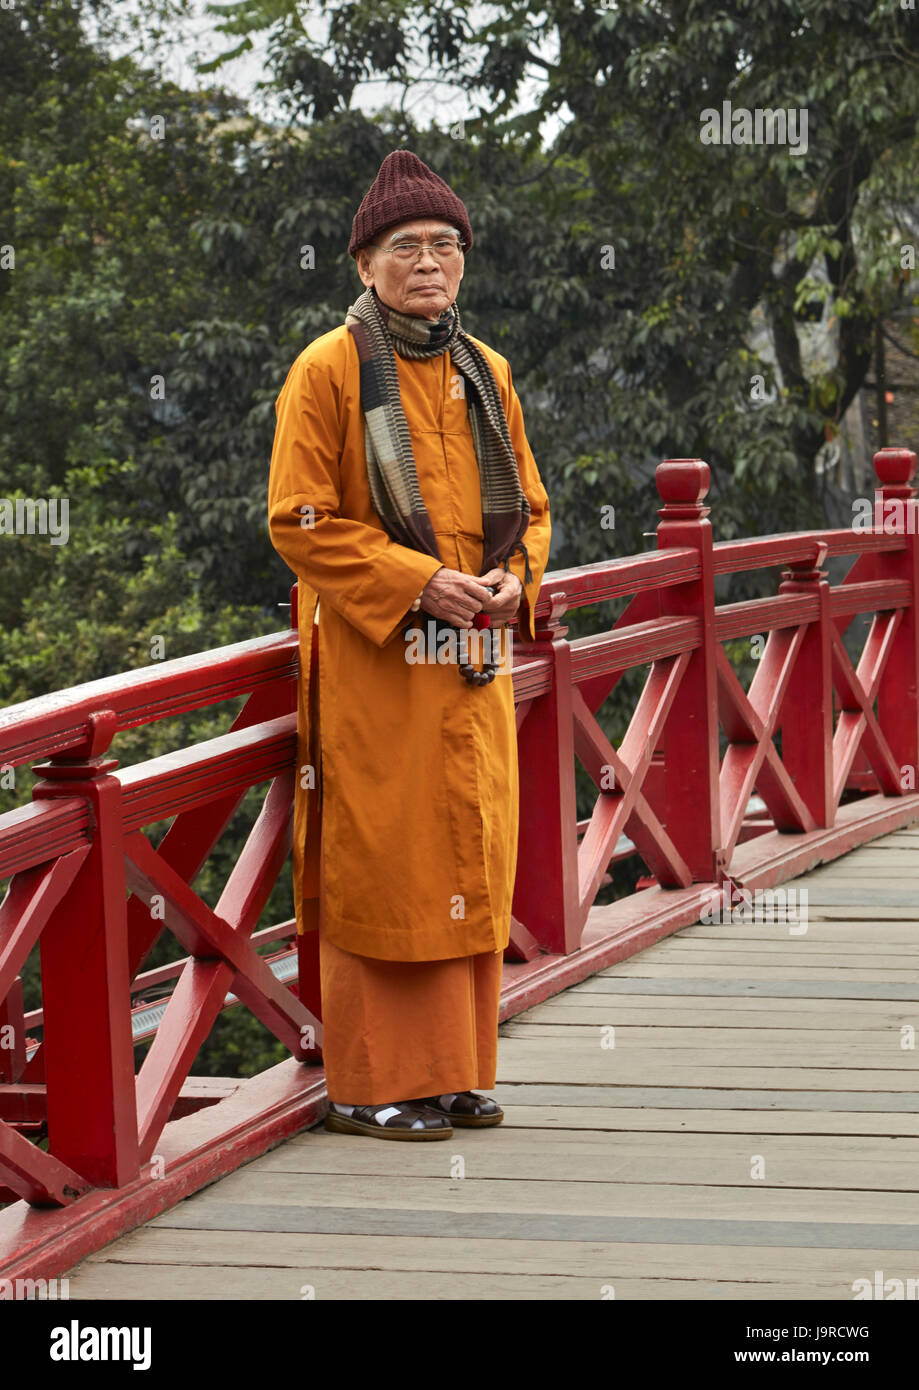 Monk on the Huc Bridge, Hoan Kiem Lake, Hanoi, Vietnam - Stock Image